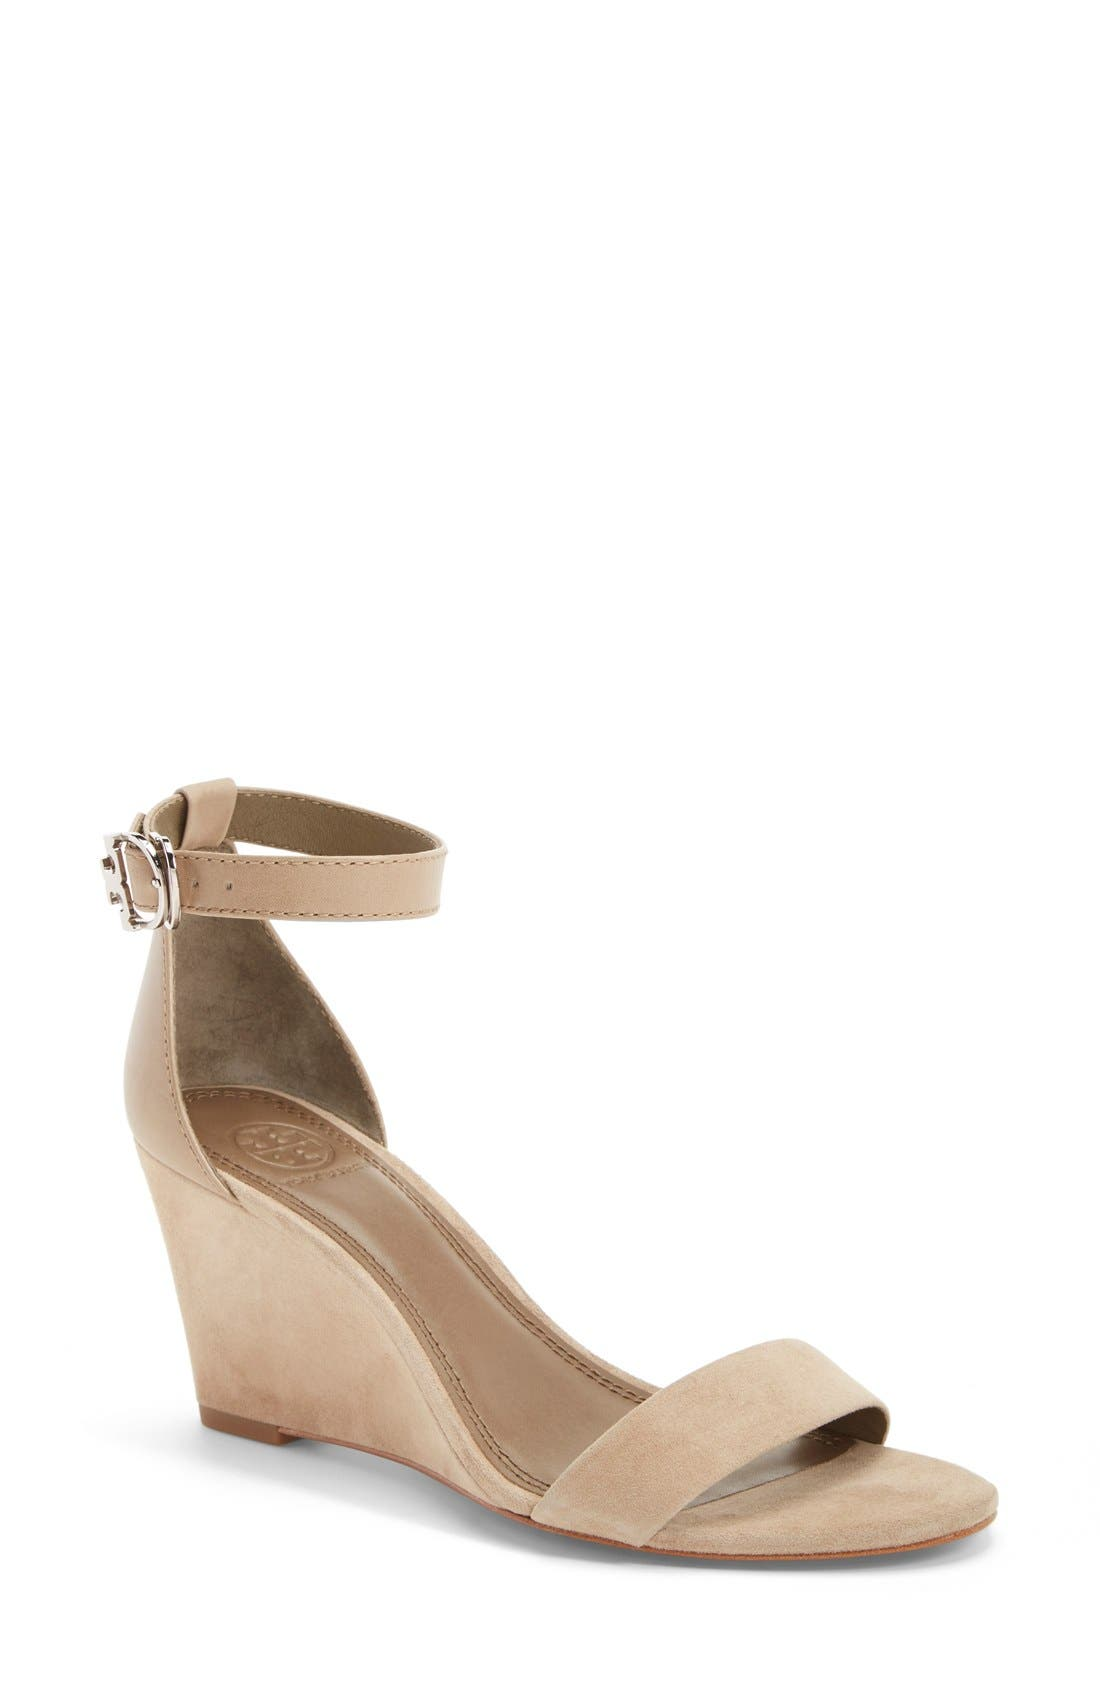 Alternate Image 1 Selected - Tory Burch 'Thames' Ankle Strap Wedge Sandal (Women)